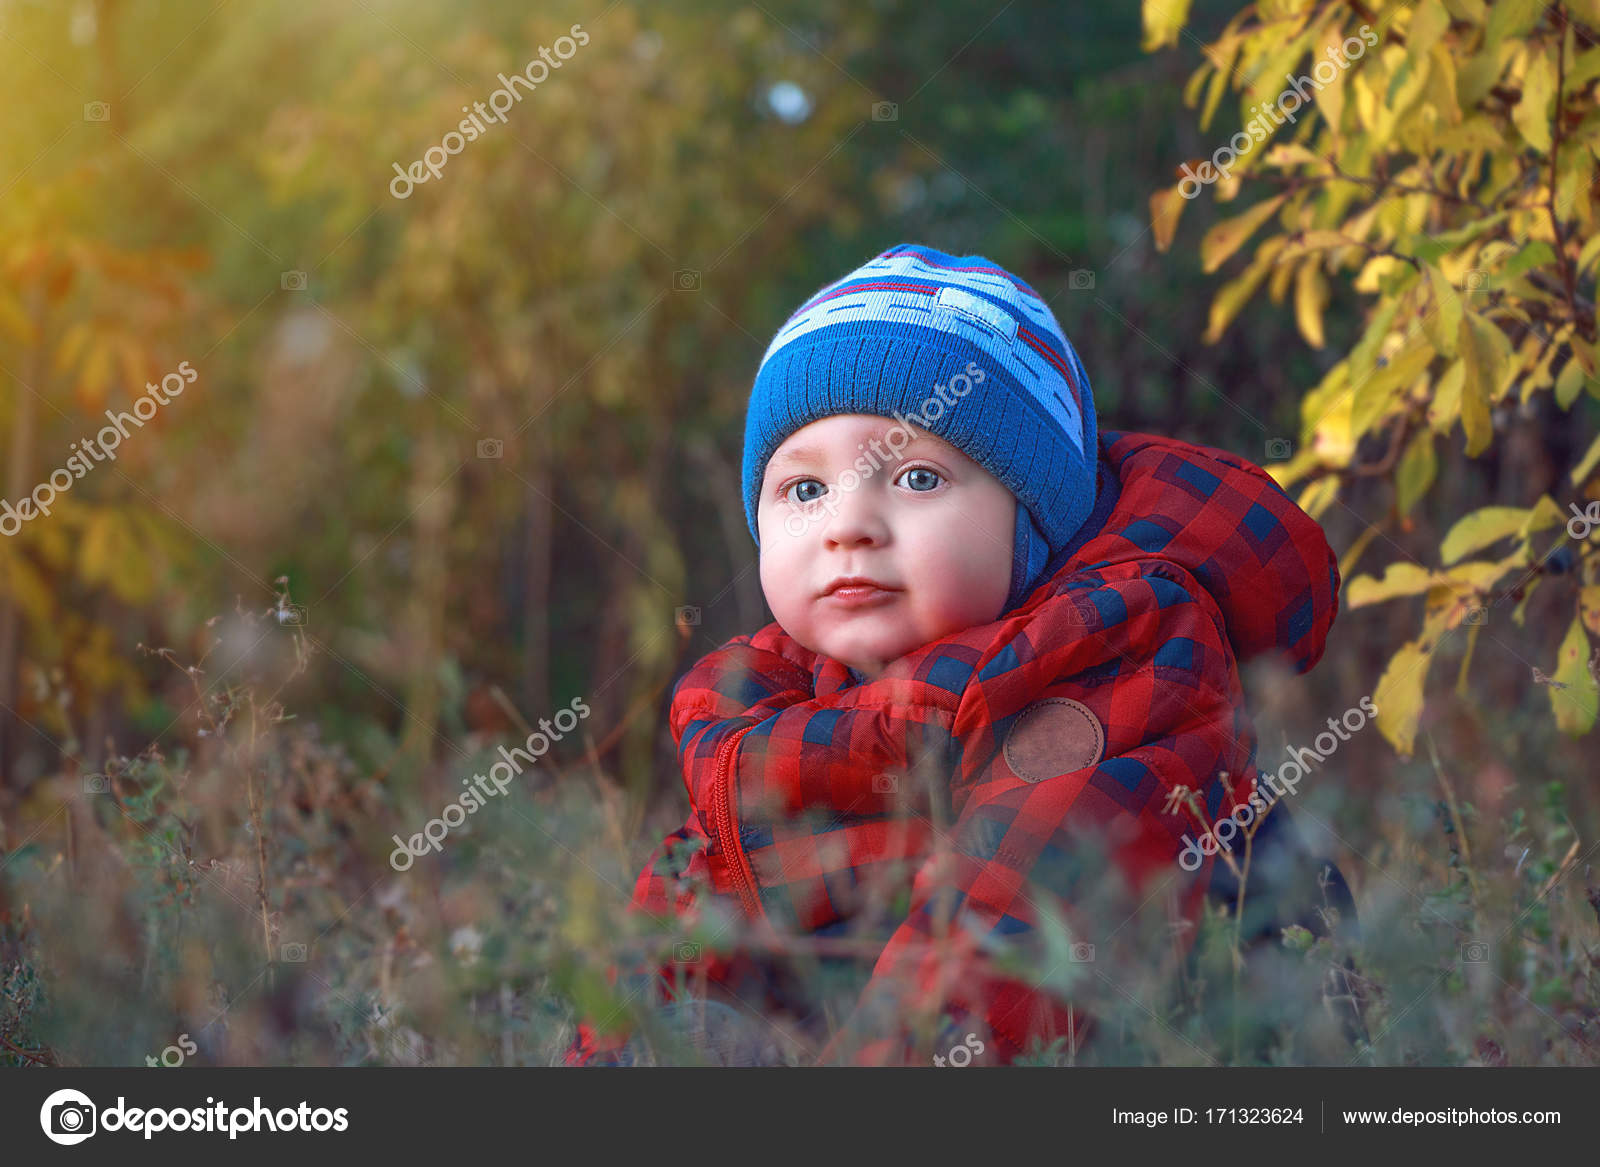 little cute baby siting in the grass. lifestyle, fashion and trendy